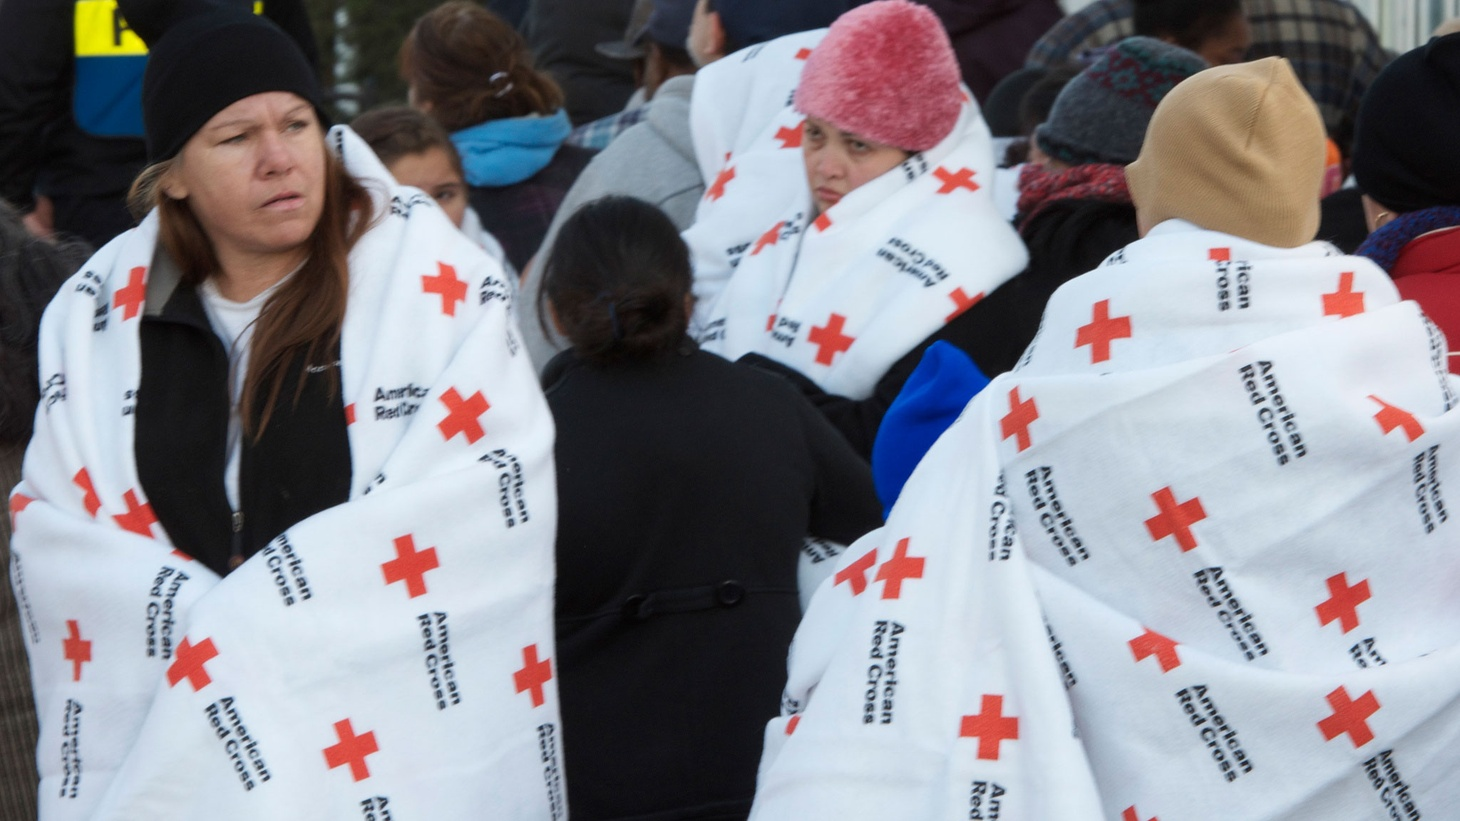 The Red Cross -- America's primary disaster relief agency -- is on the defensive after reports that it's more concerned about public relations than public assistance. Is it hiding the truth or is it the victim of sensational journalism? Is it prepared for future disasters, which could be bigger and harder to handle than those of the past?